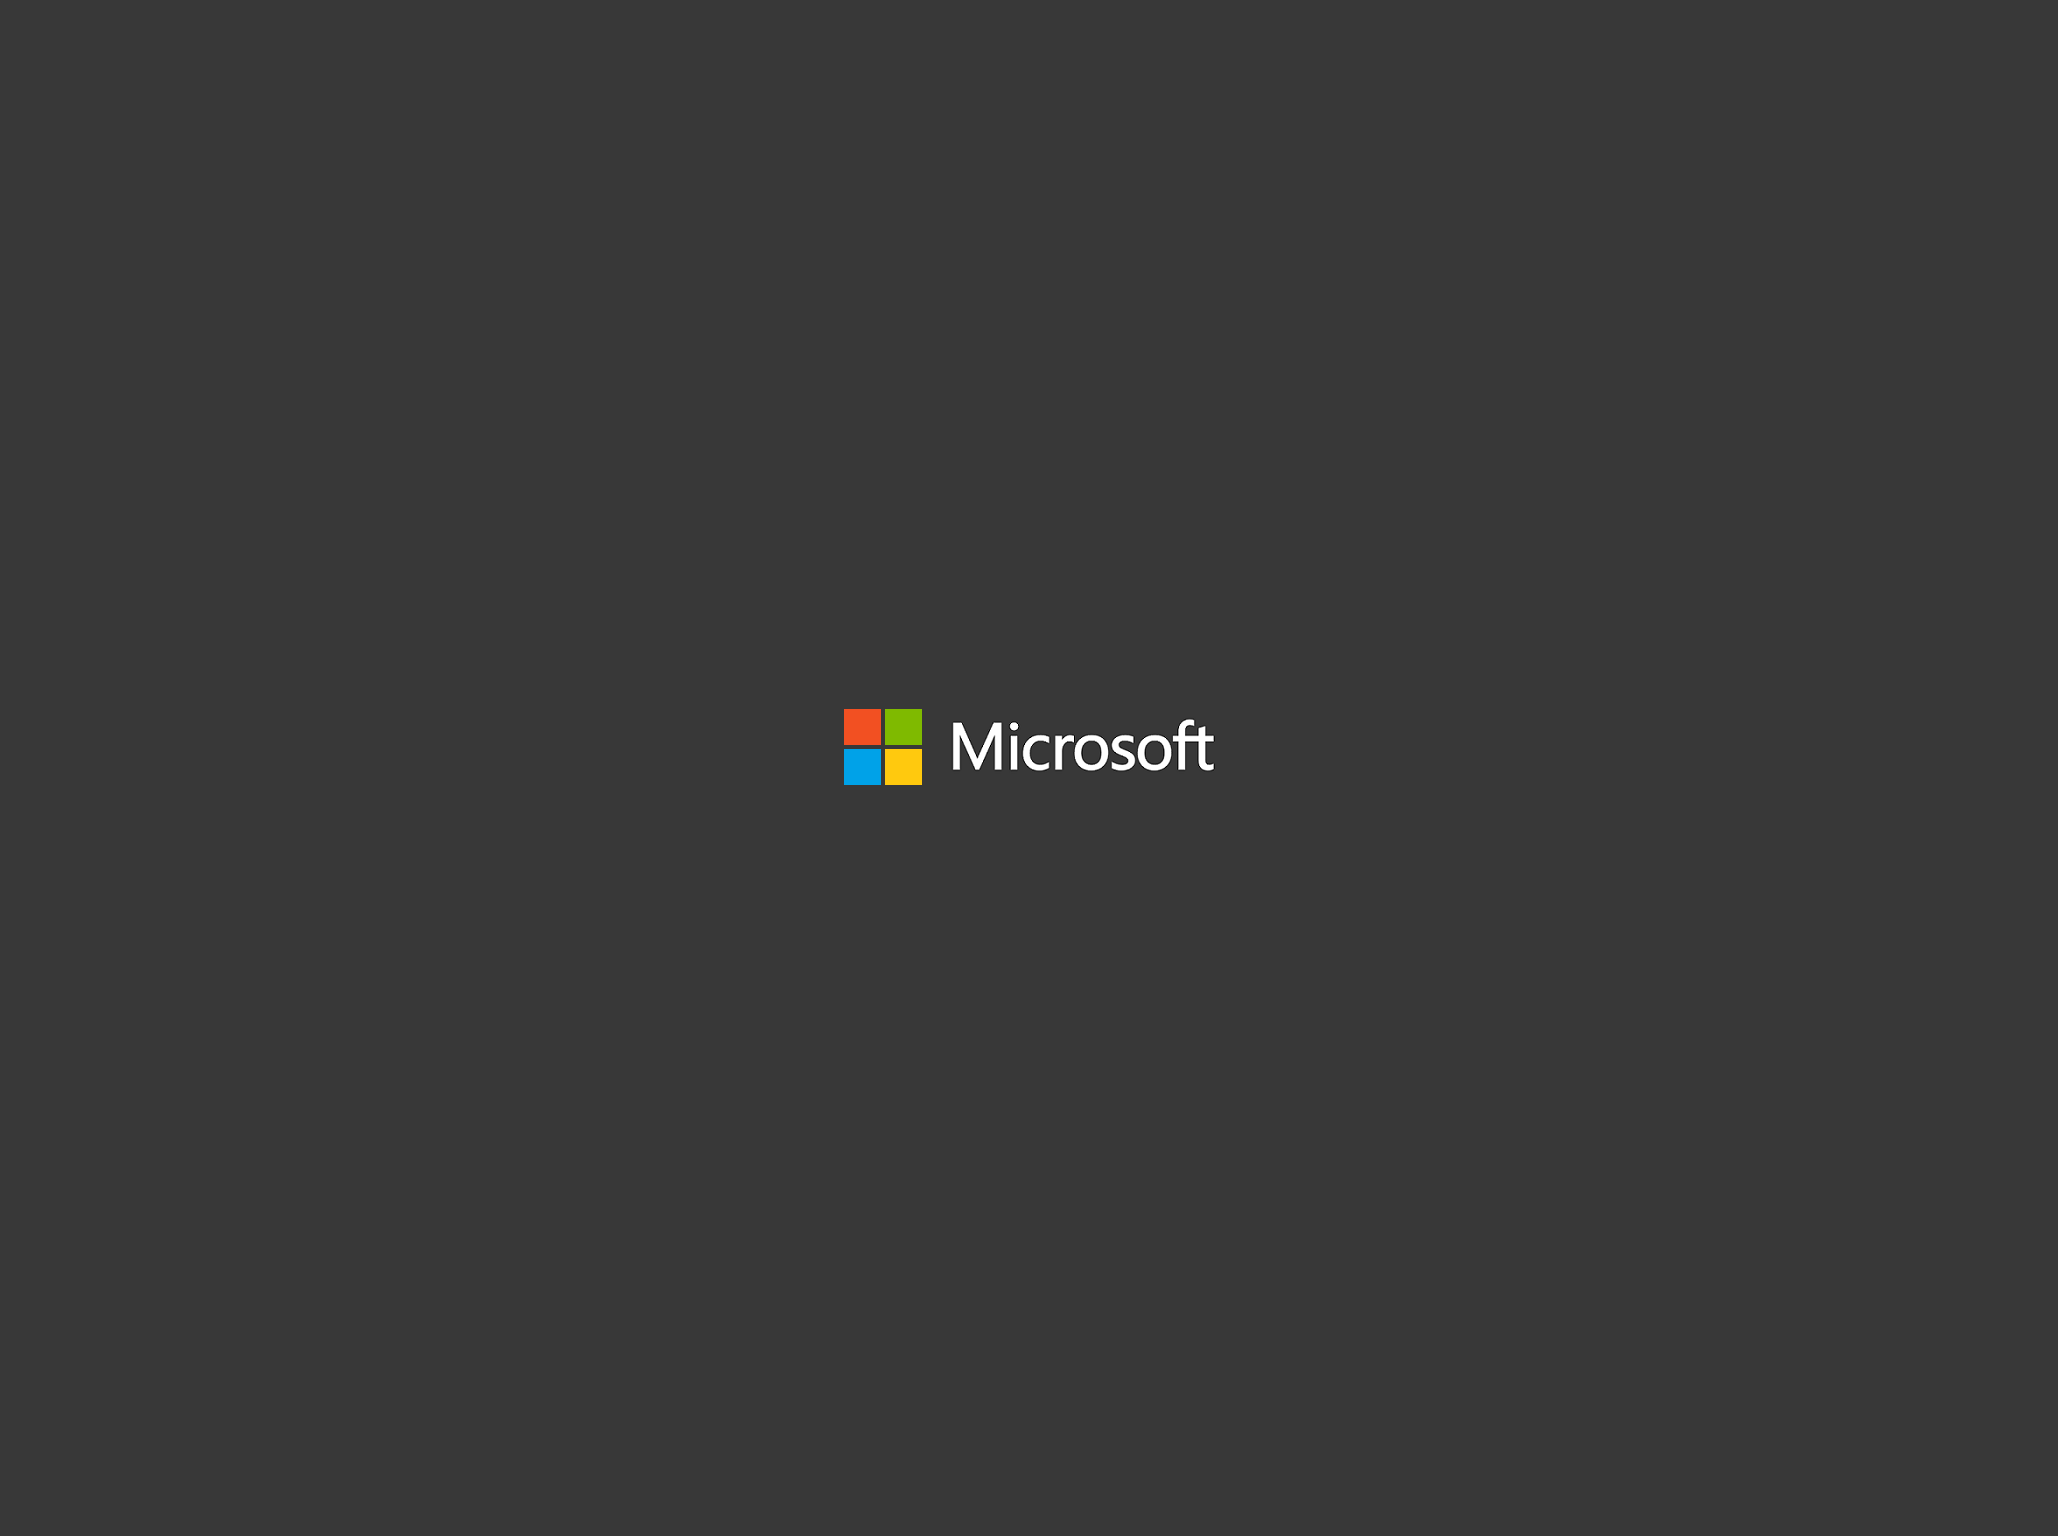 microsoft windows wallpapers by gifteddeviant - photo #2